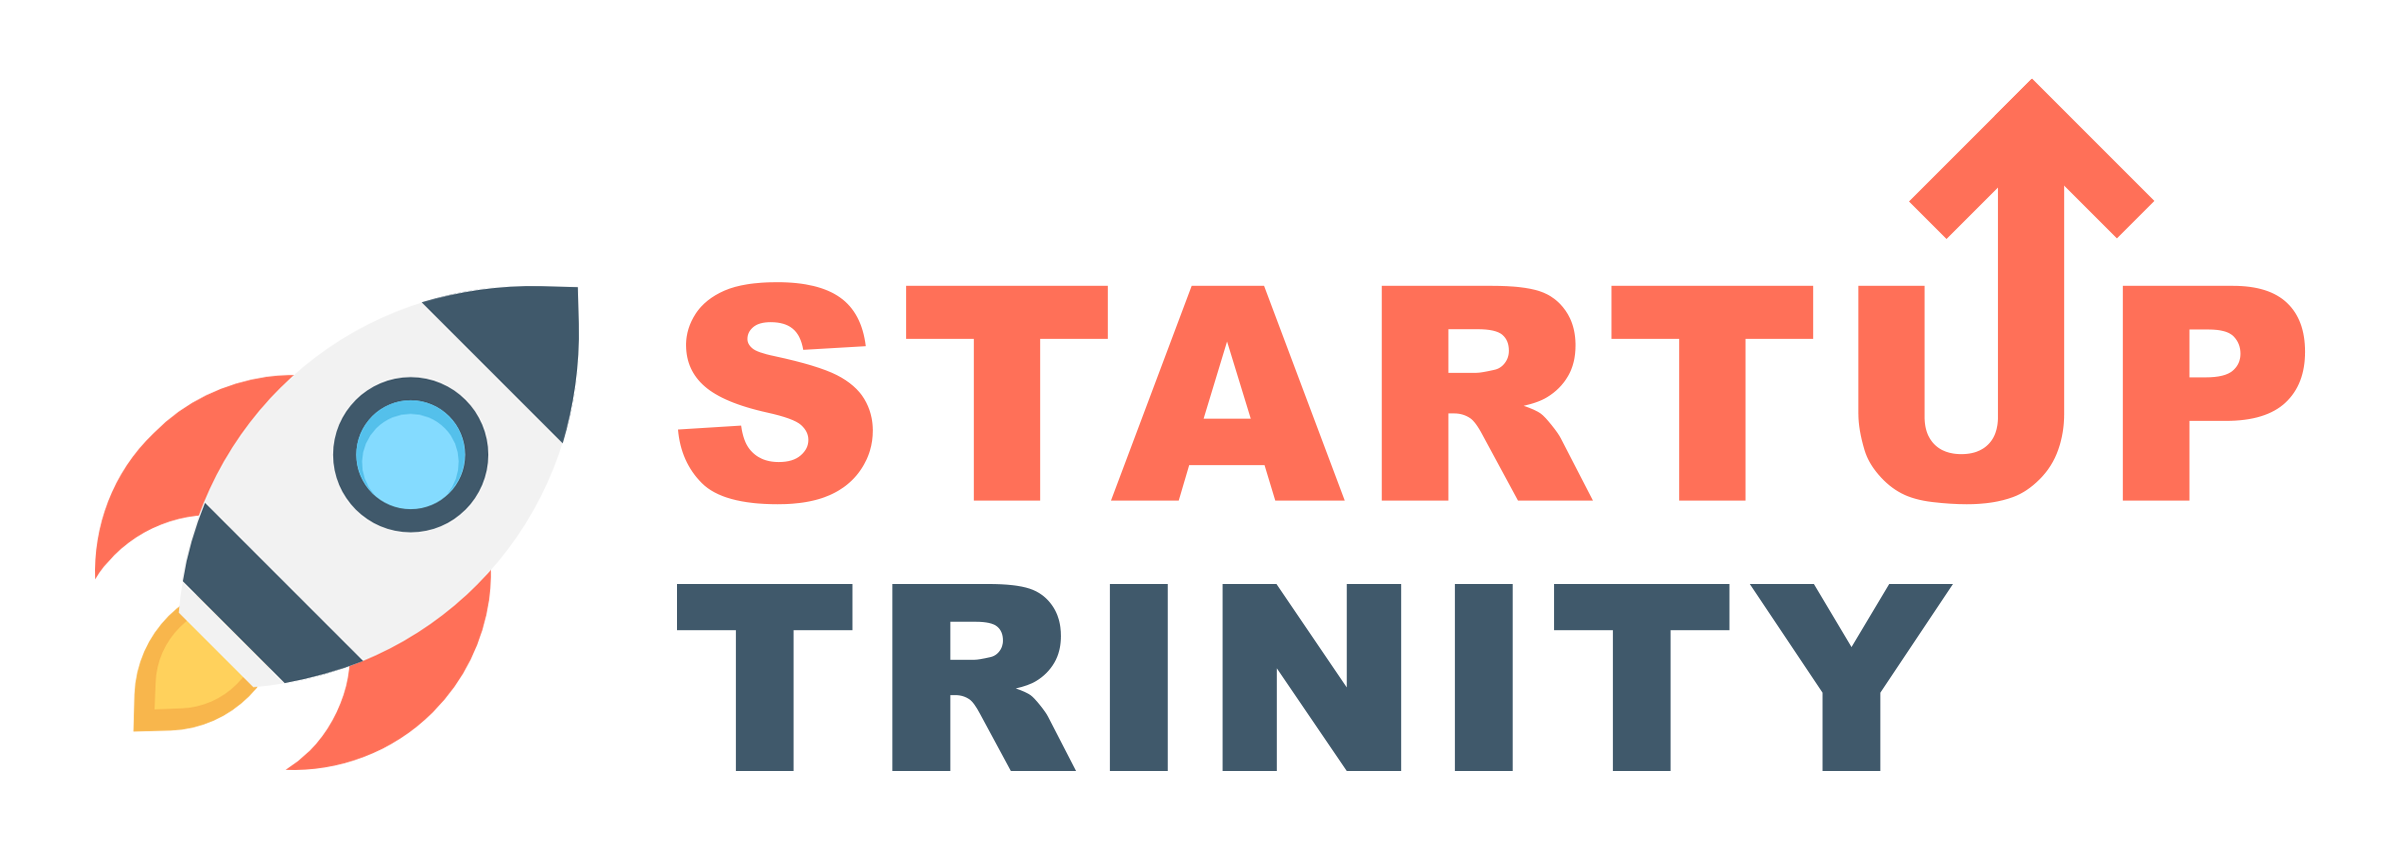 Startup Trinity – Tech Startup & Business News